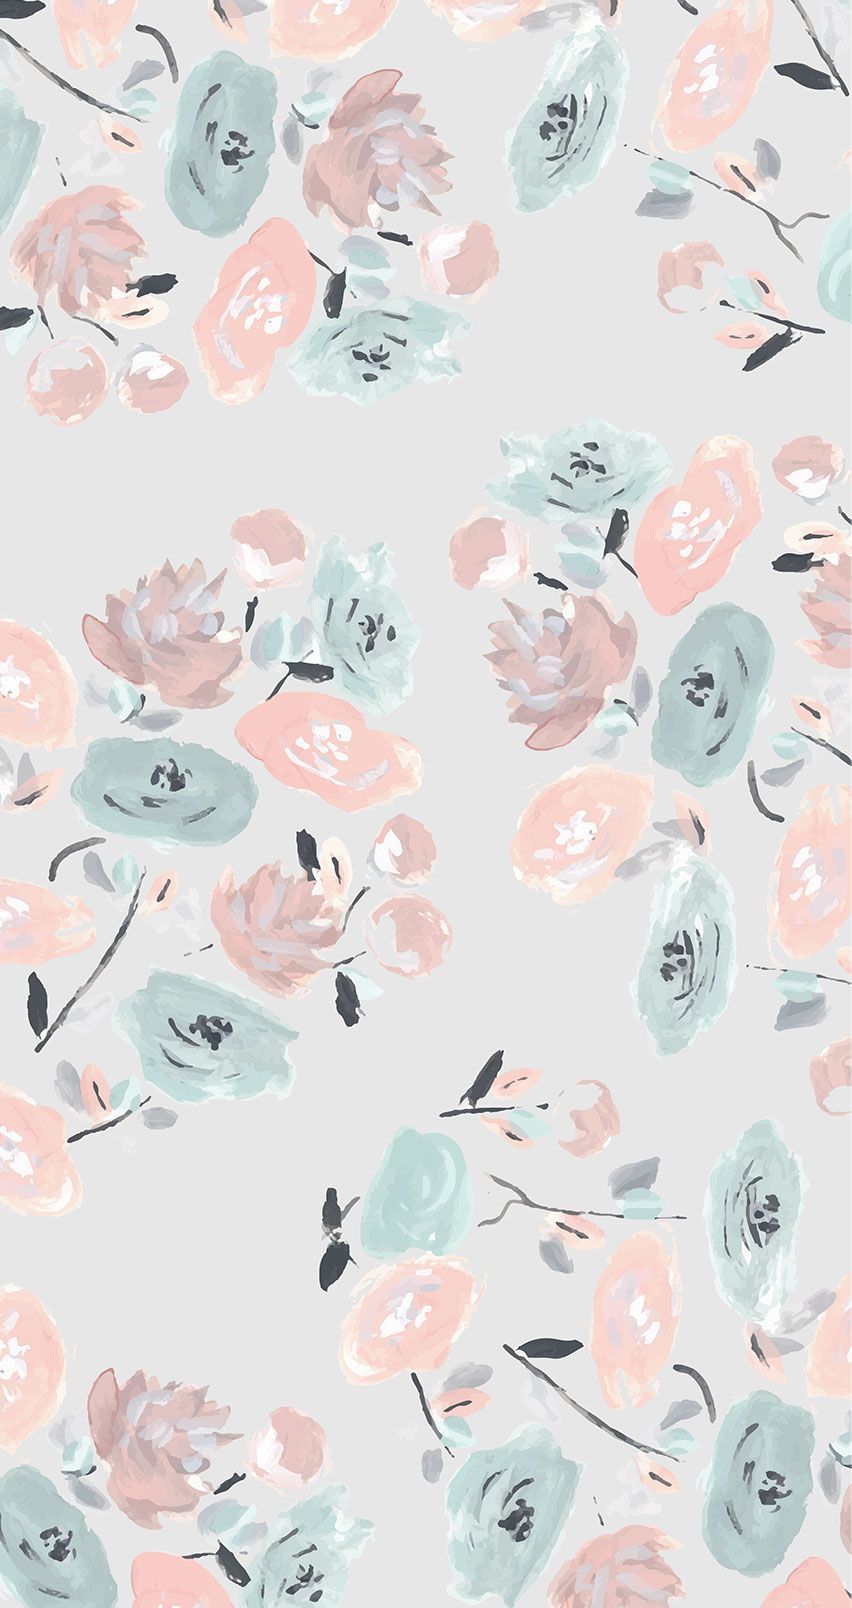 Get New Floral Iphone X Wallpaper 2020